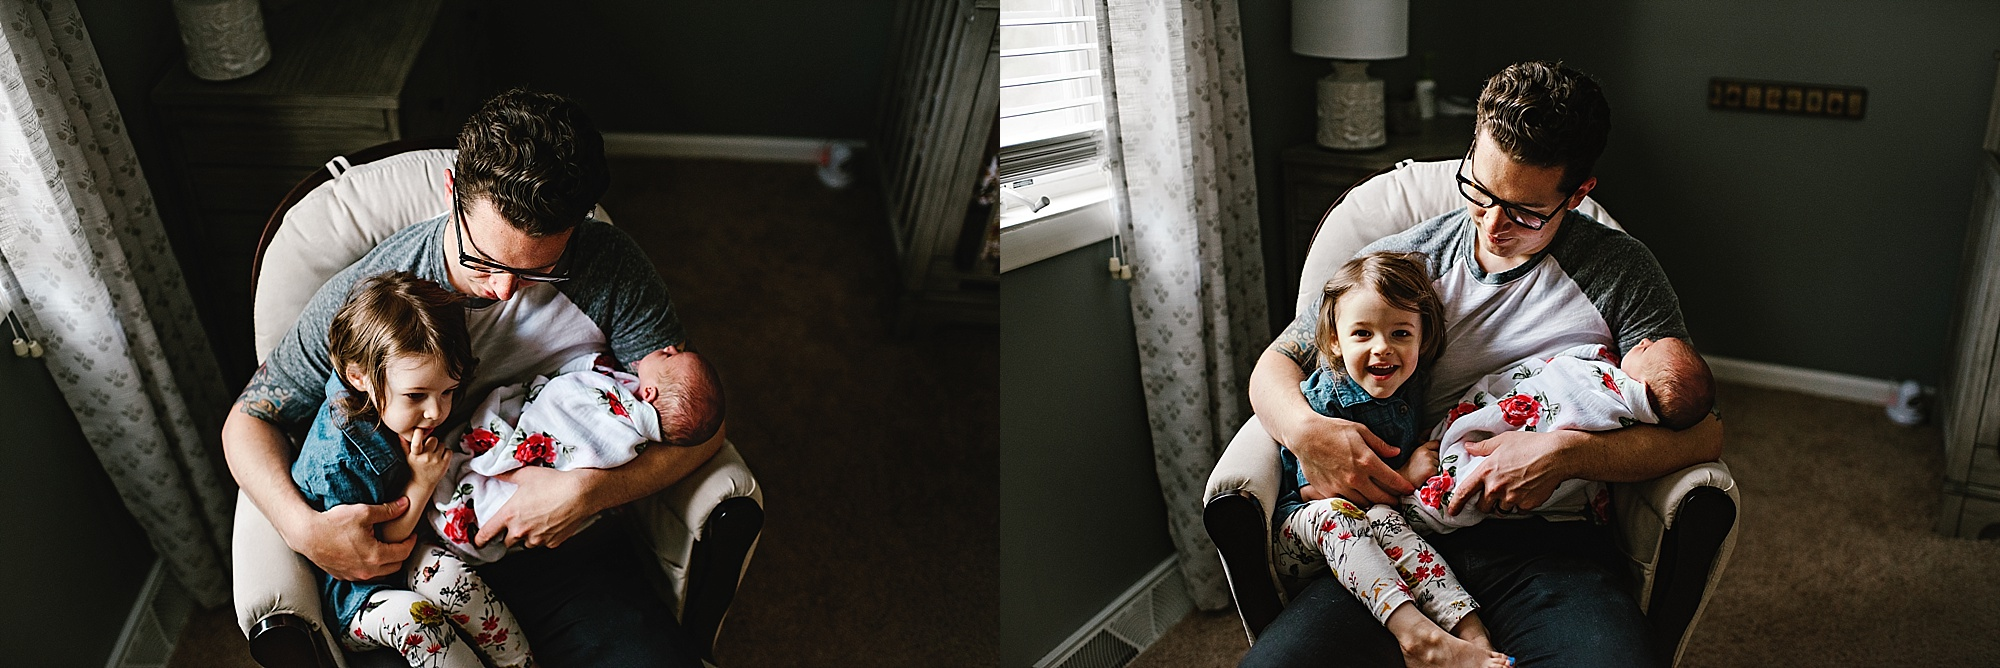 lauren-grayson-photography-cleveland-ohio-photographer-newborn-session-in-home-lifestyle-josephine_0622.jpg